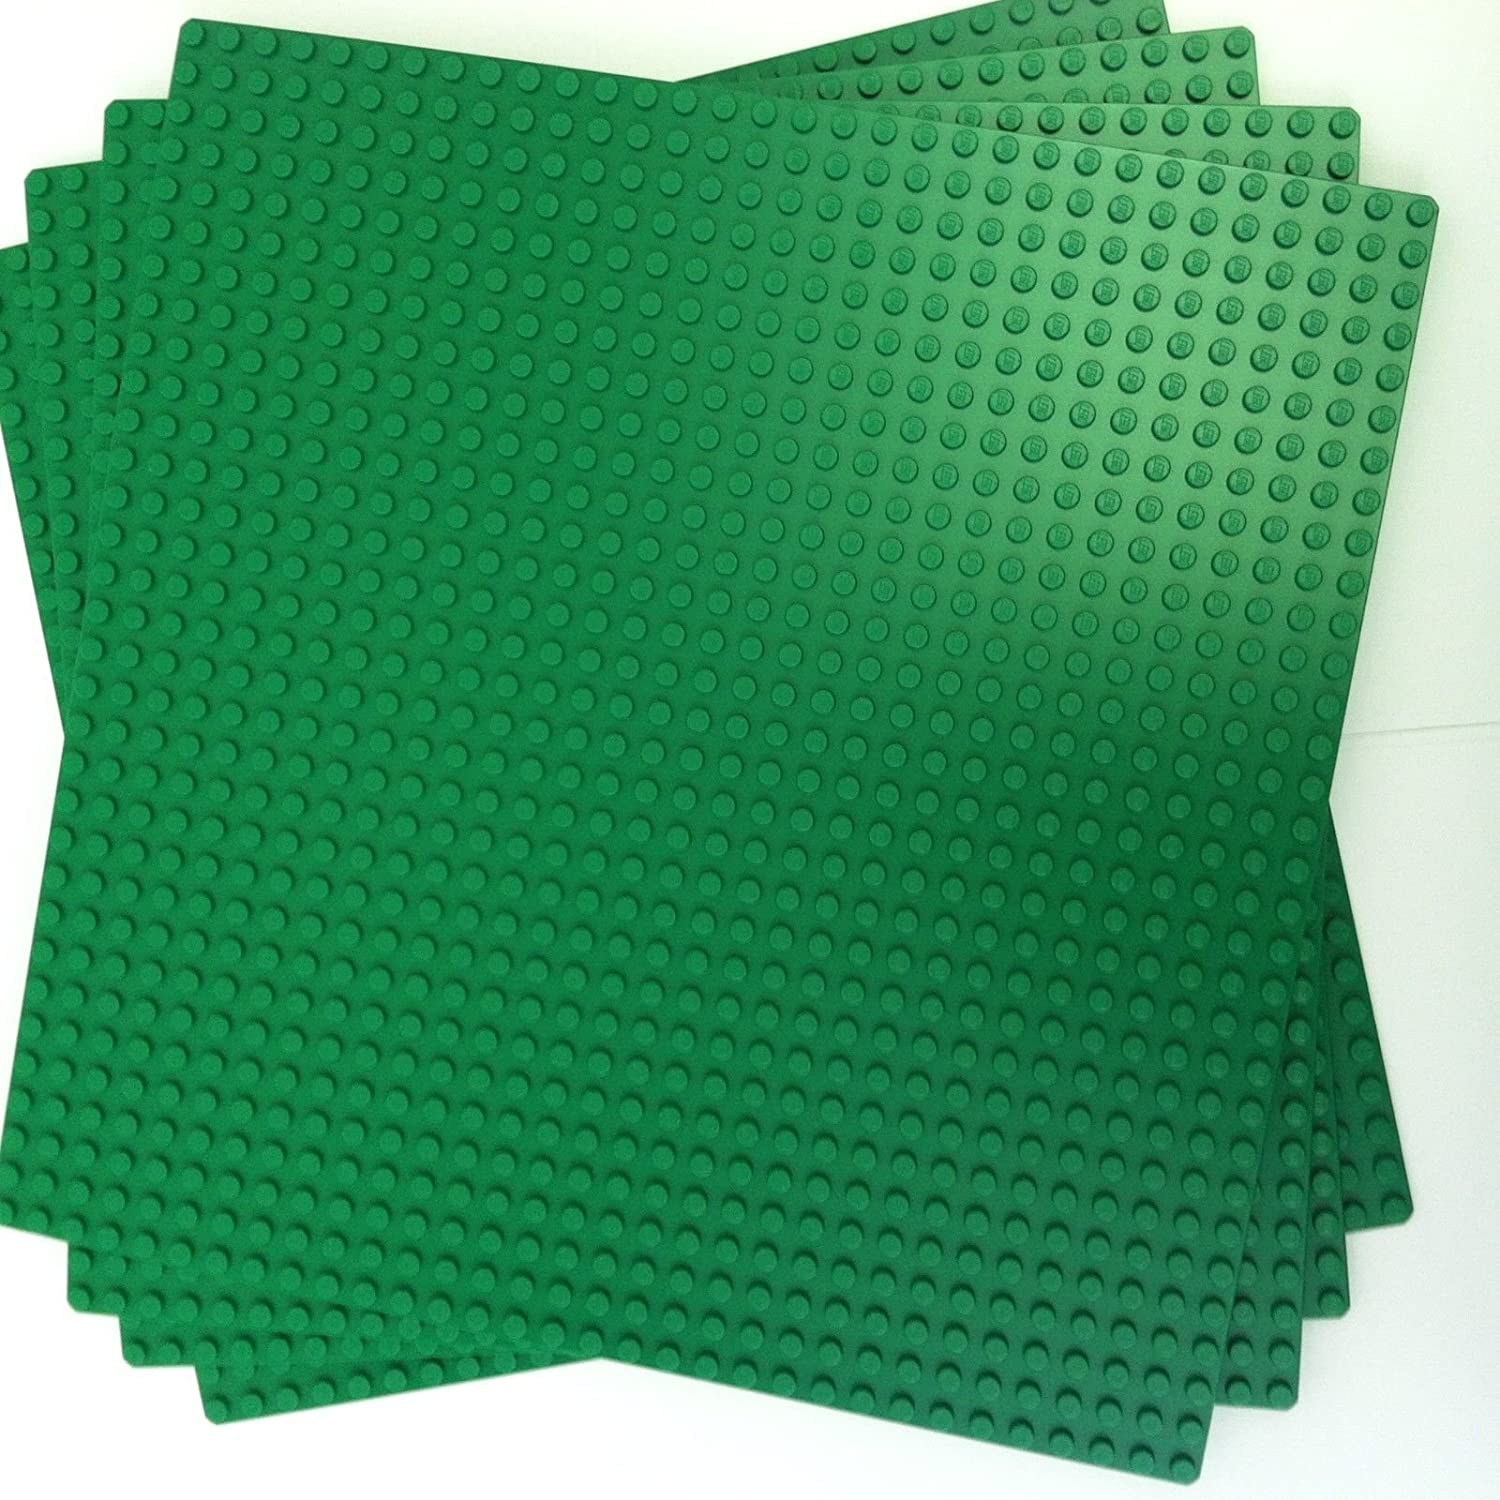 """LEGO Green Baseplate 626 (10"""" x 10"""") lot of 10"""